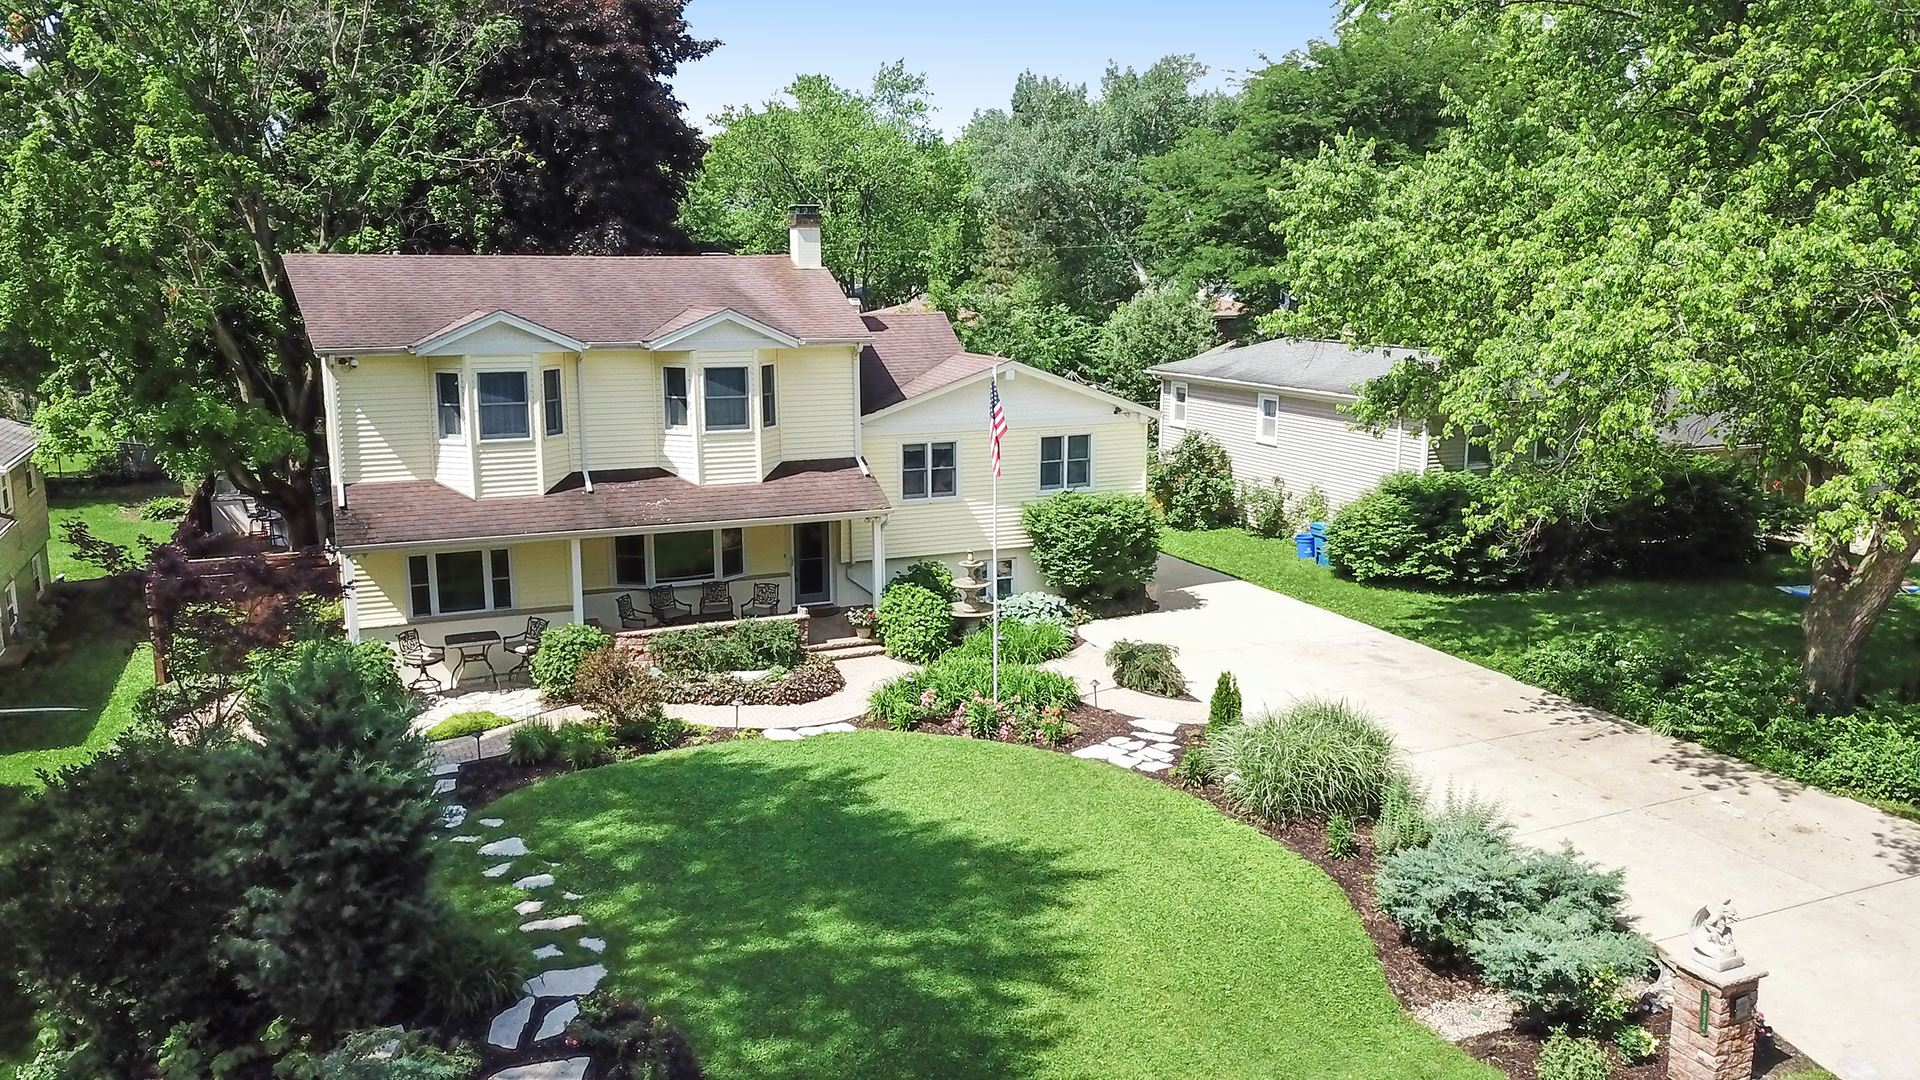 22W343 Birchwood Drive, Glen Ellyn, IL 60137 - #: 10637955